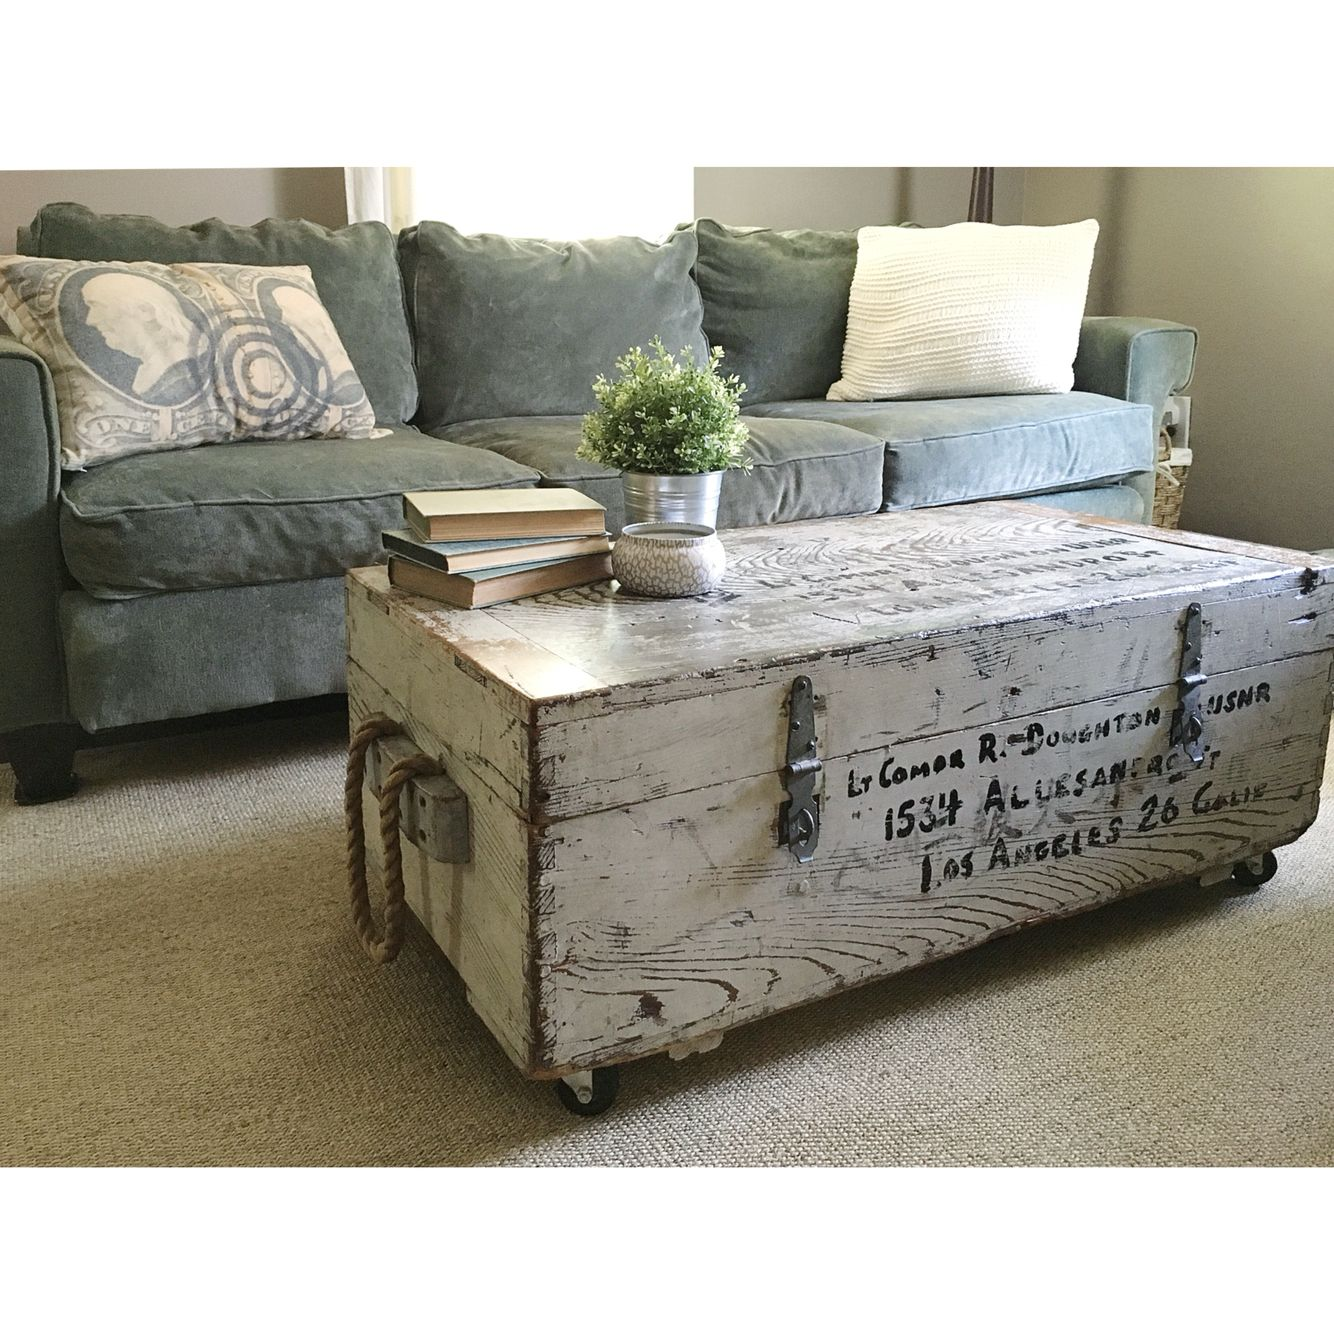 Vintage Wwii Foot Locker Repurposed Into Coffee Table And Blanket Storage Ethelusvintage Etsy